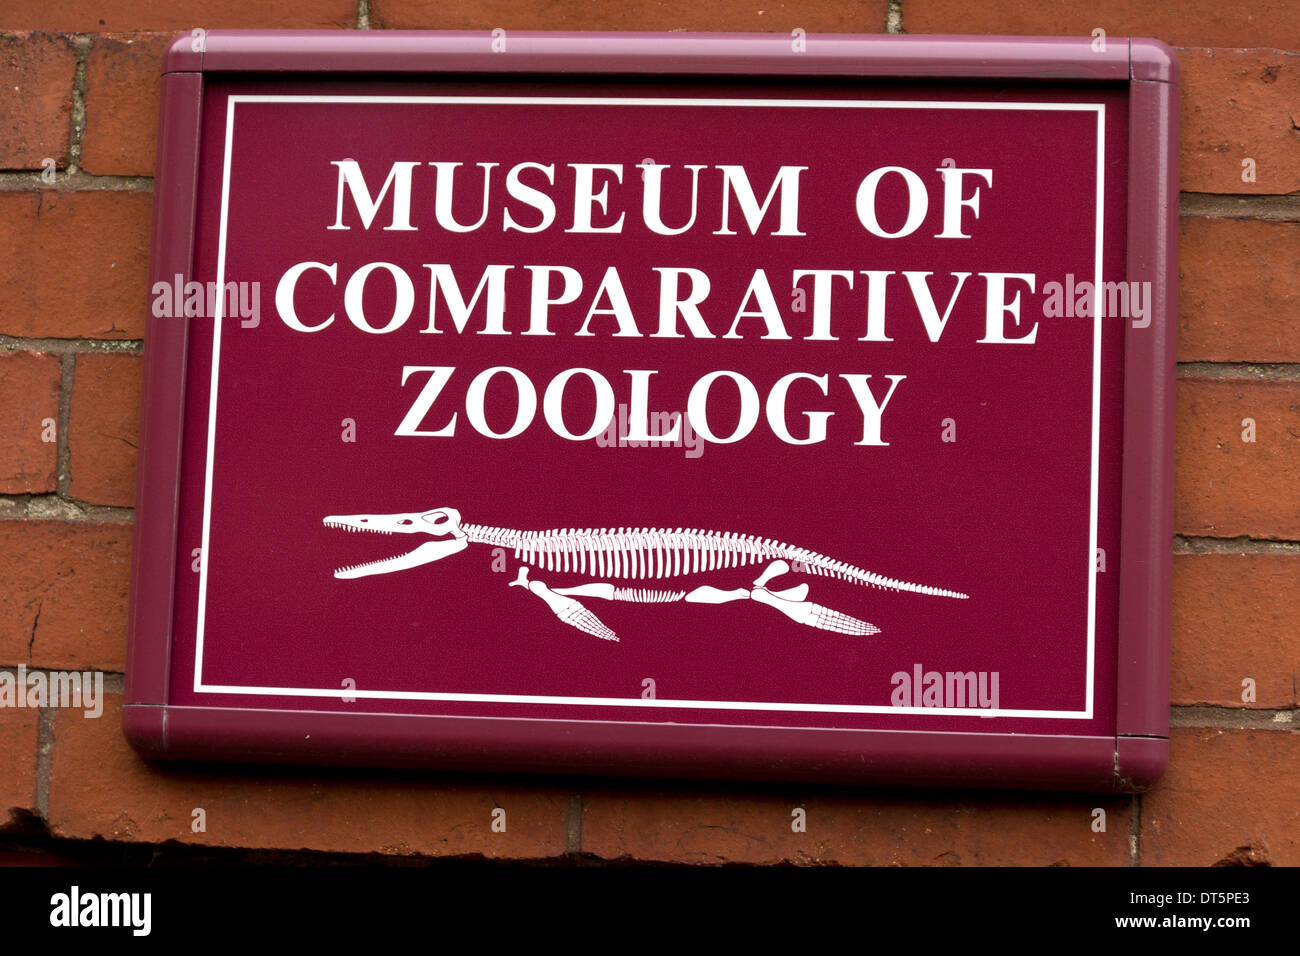 Sign for Museum of Comparative Zoology at Harvard University, Boston, Massachusetts, USA - Stock Image